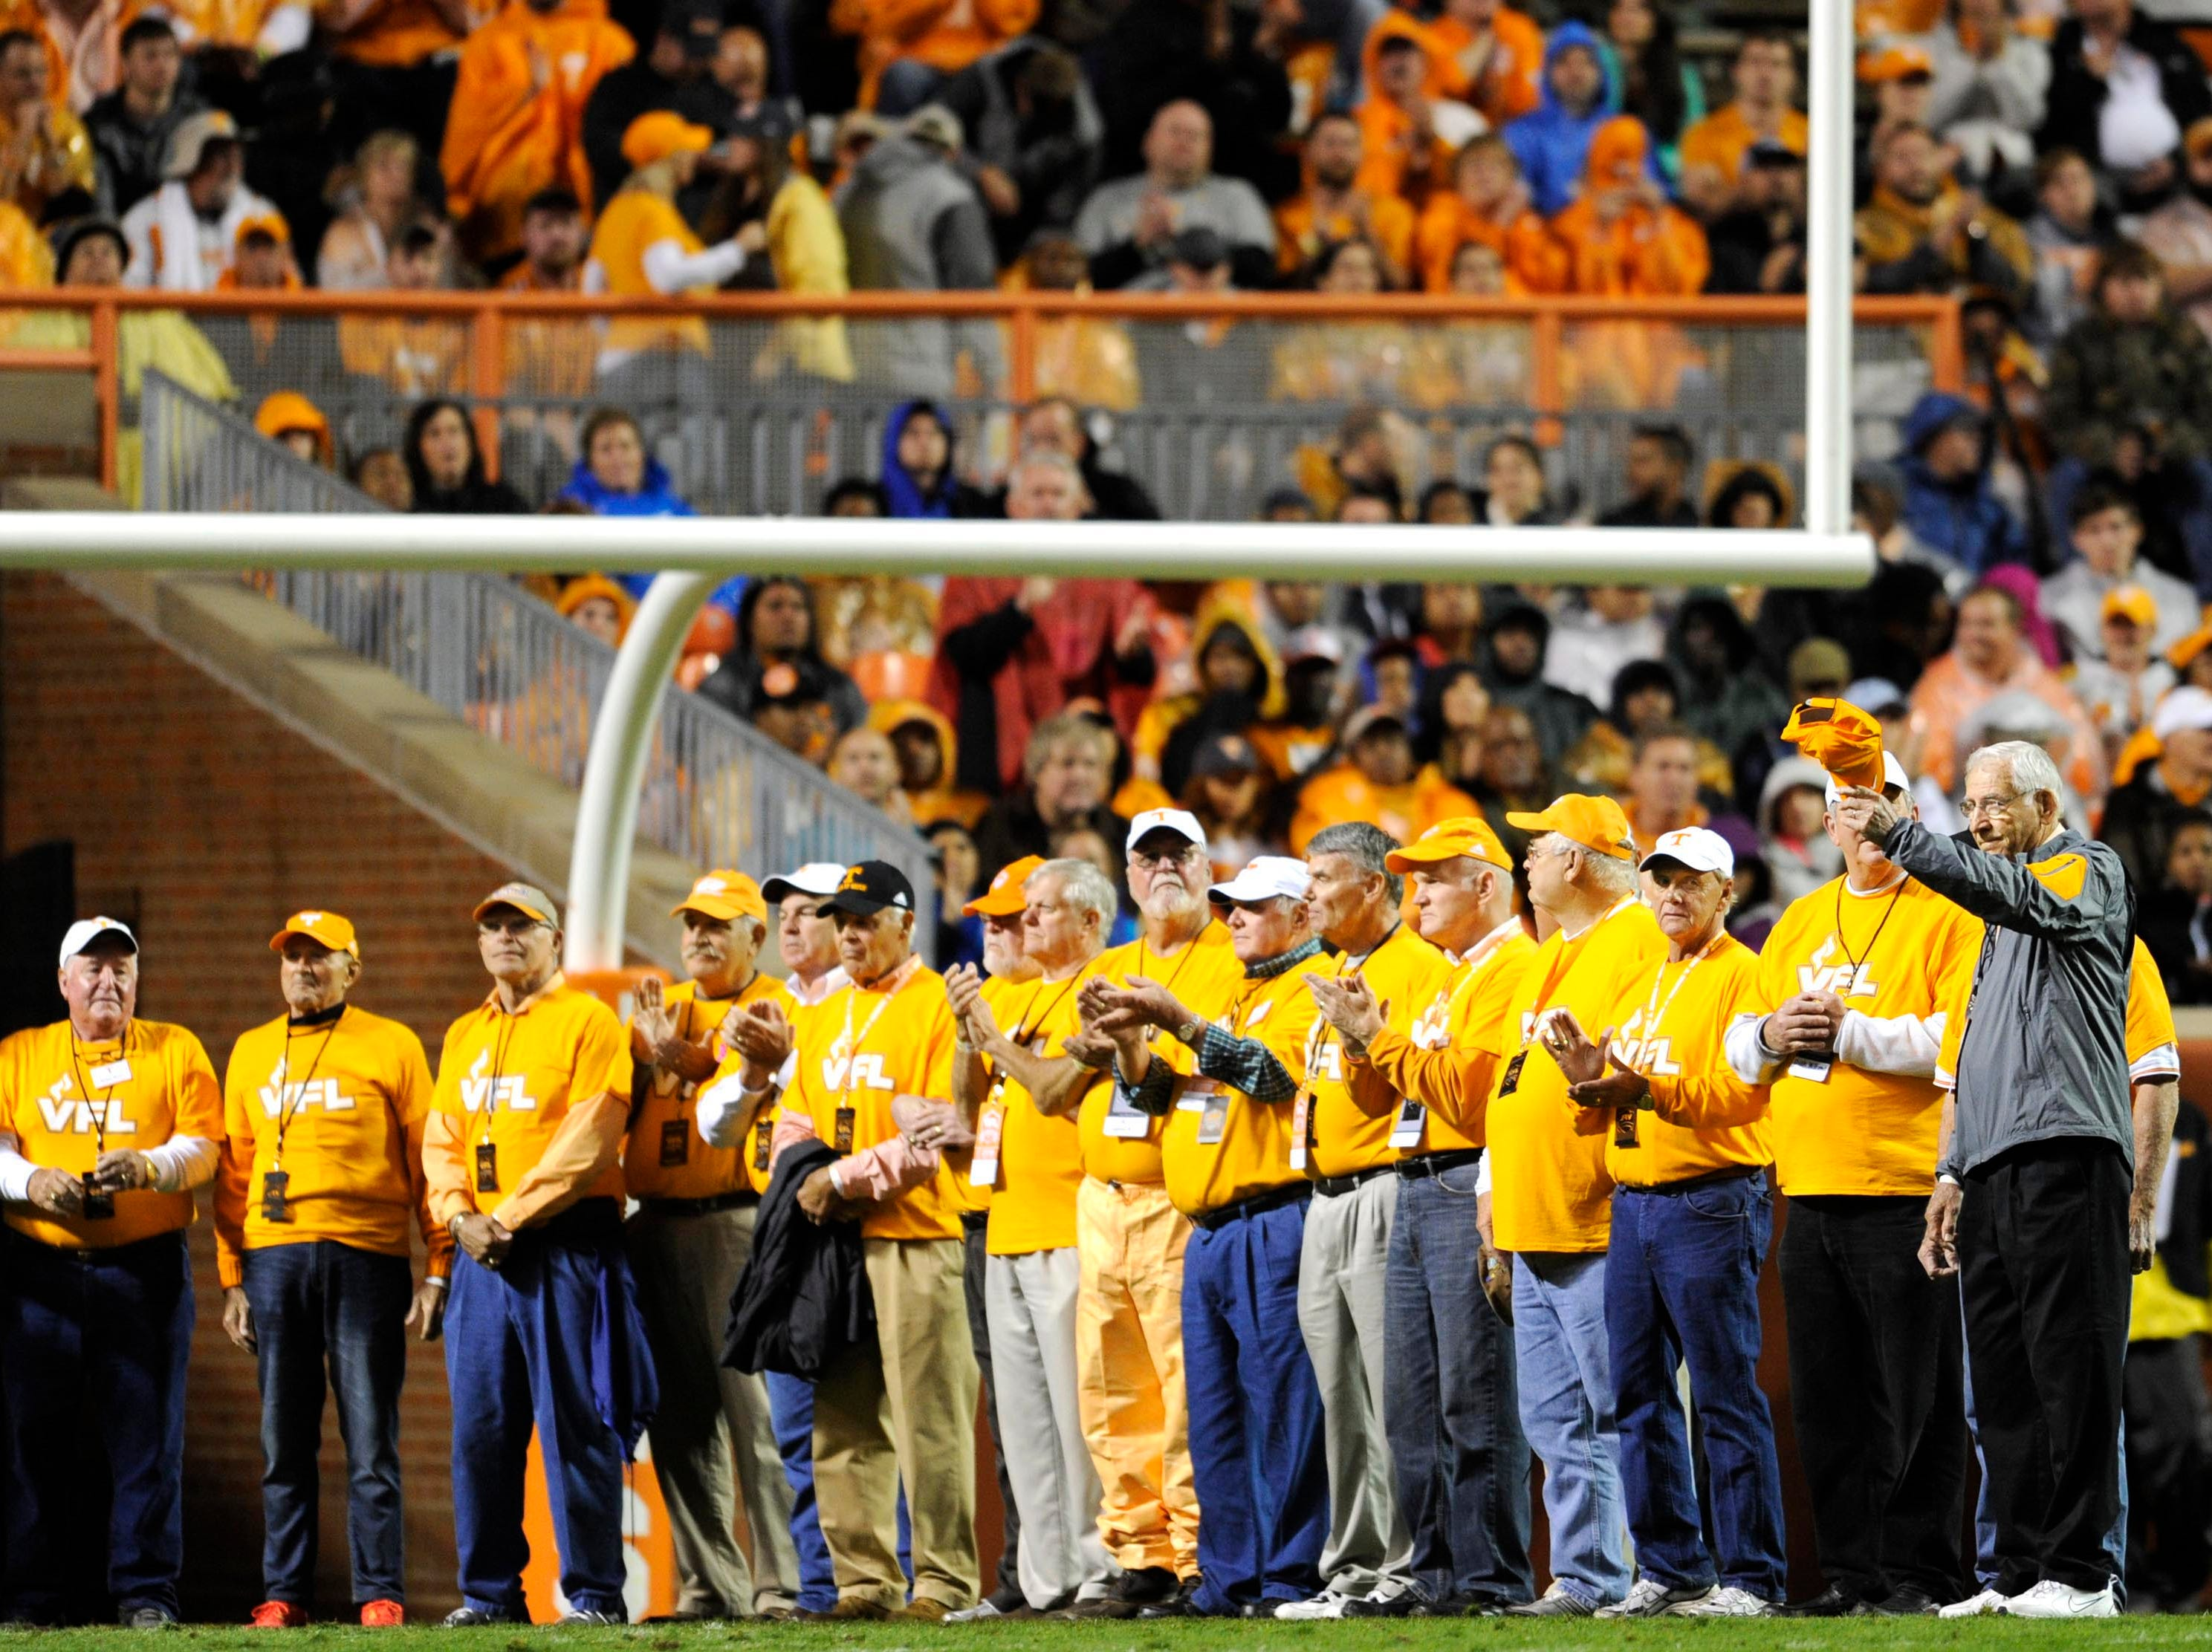 Doug Dickey, former Tennessee football coach, right, waves his cap to acknowledge the crowd as he stands on the field with former players during the first half against Arkansas at Neyland Stadium in Knoxville, Tenn. on Saturday, Oct. 3, 2015.